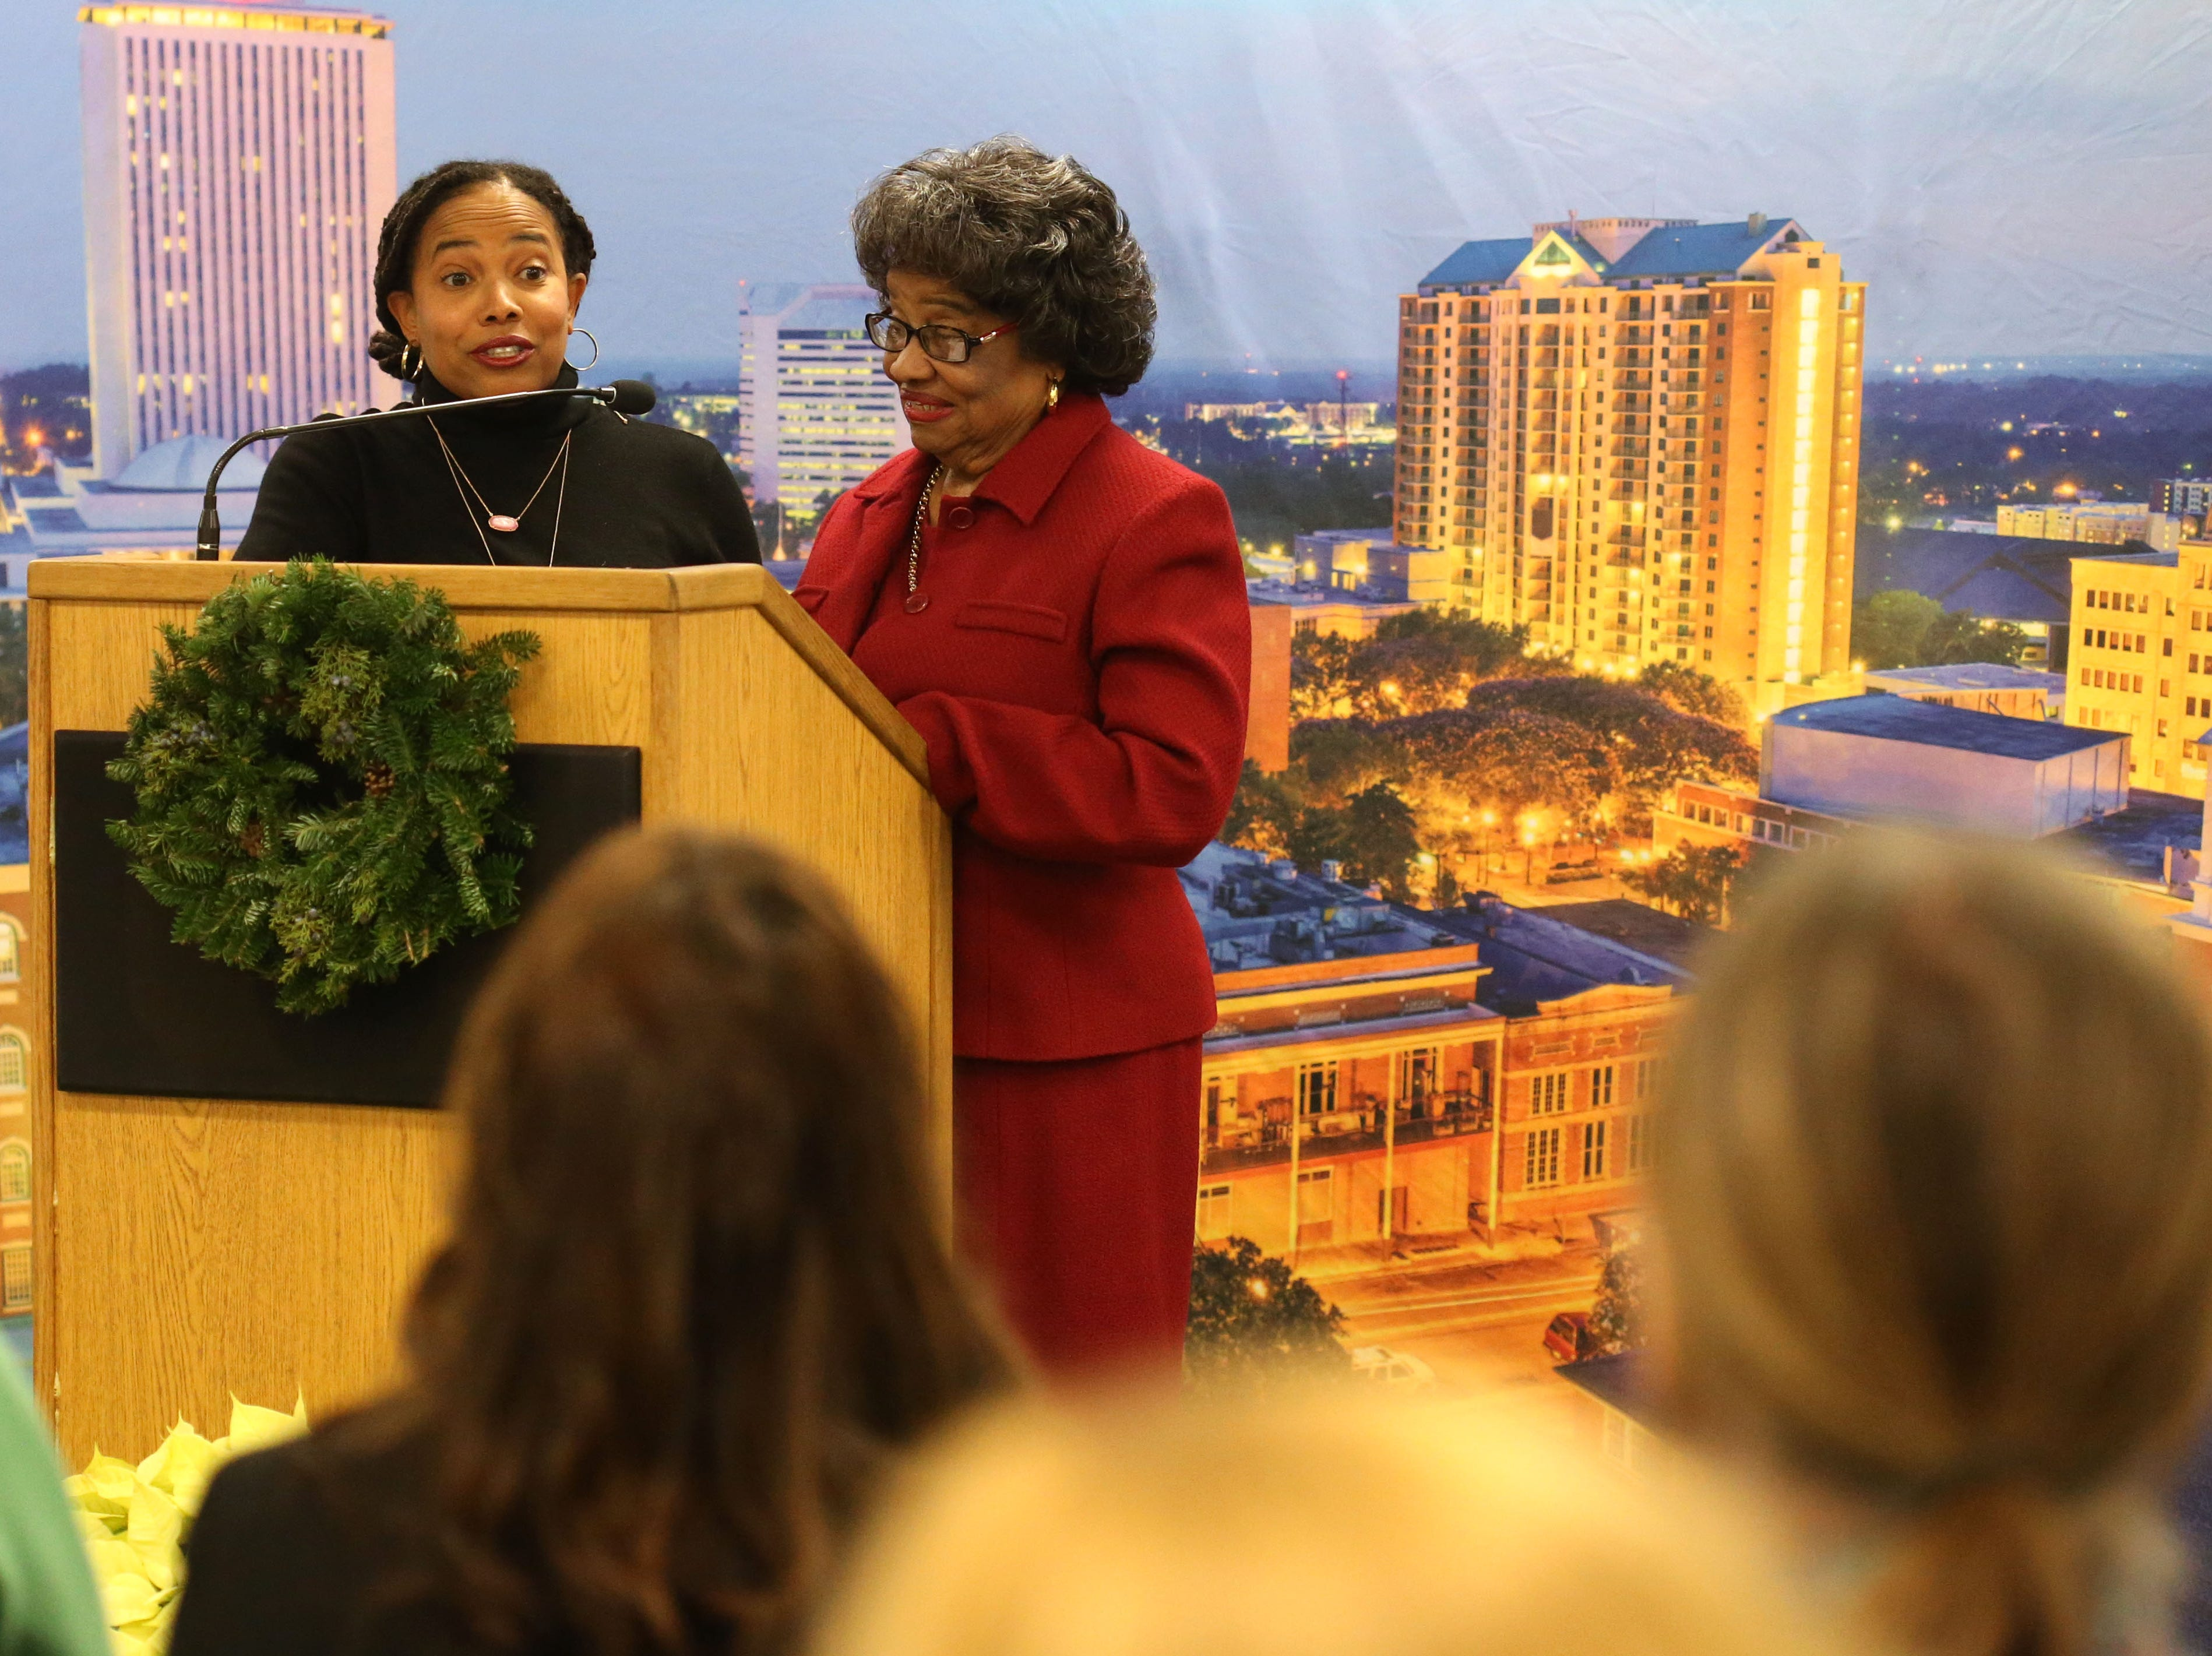 Lucille Alexander, retired professor at the Florida State University College of Nursing, left, and daughter, Aurelia Alexander, professor at FAMU School of Allied Health Sciences, speak at a launch party held at the Tallahassee Democrat for Gerald Ensley's book, 'We Found Paradise,' Thursday, Dec. 6, 2018.